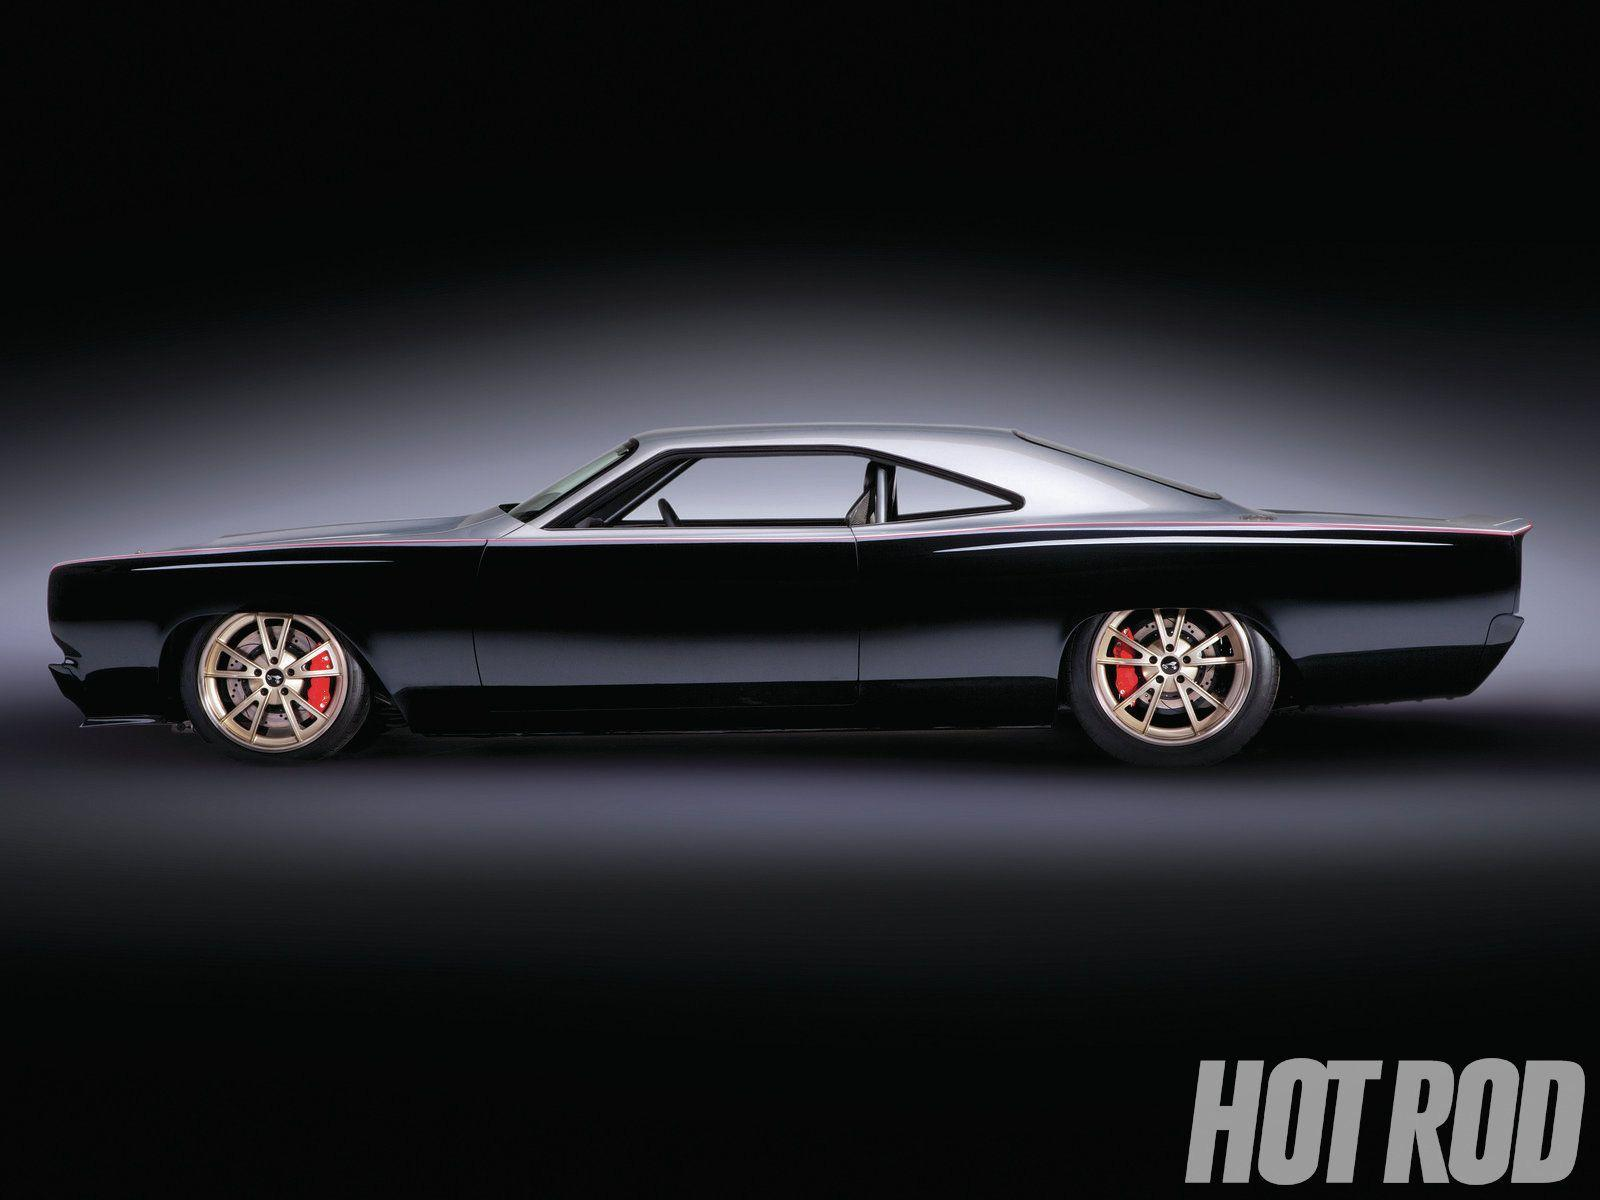 1969 Road Runner - Road Rattler - Hot Rod Network